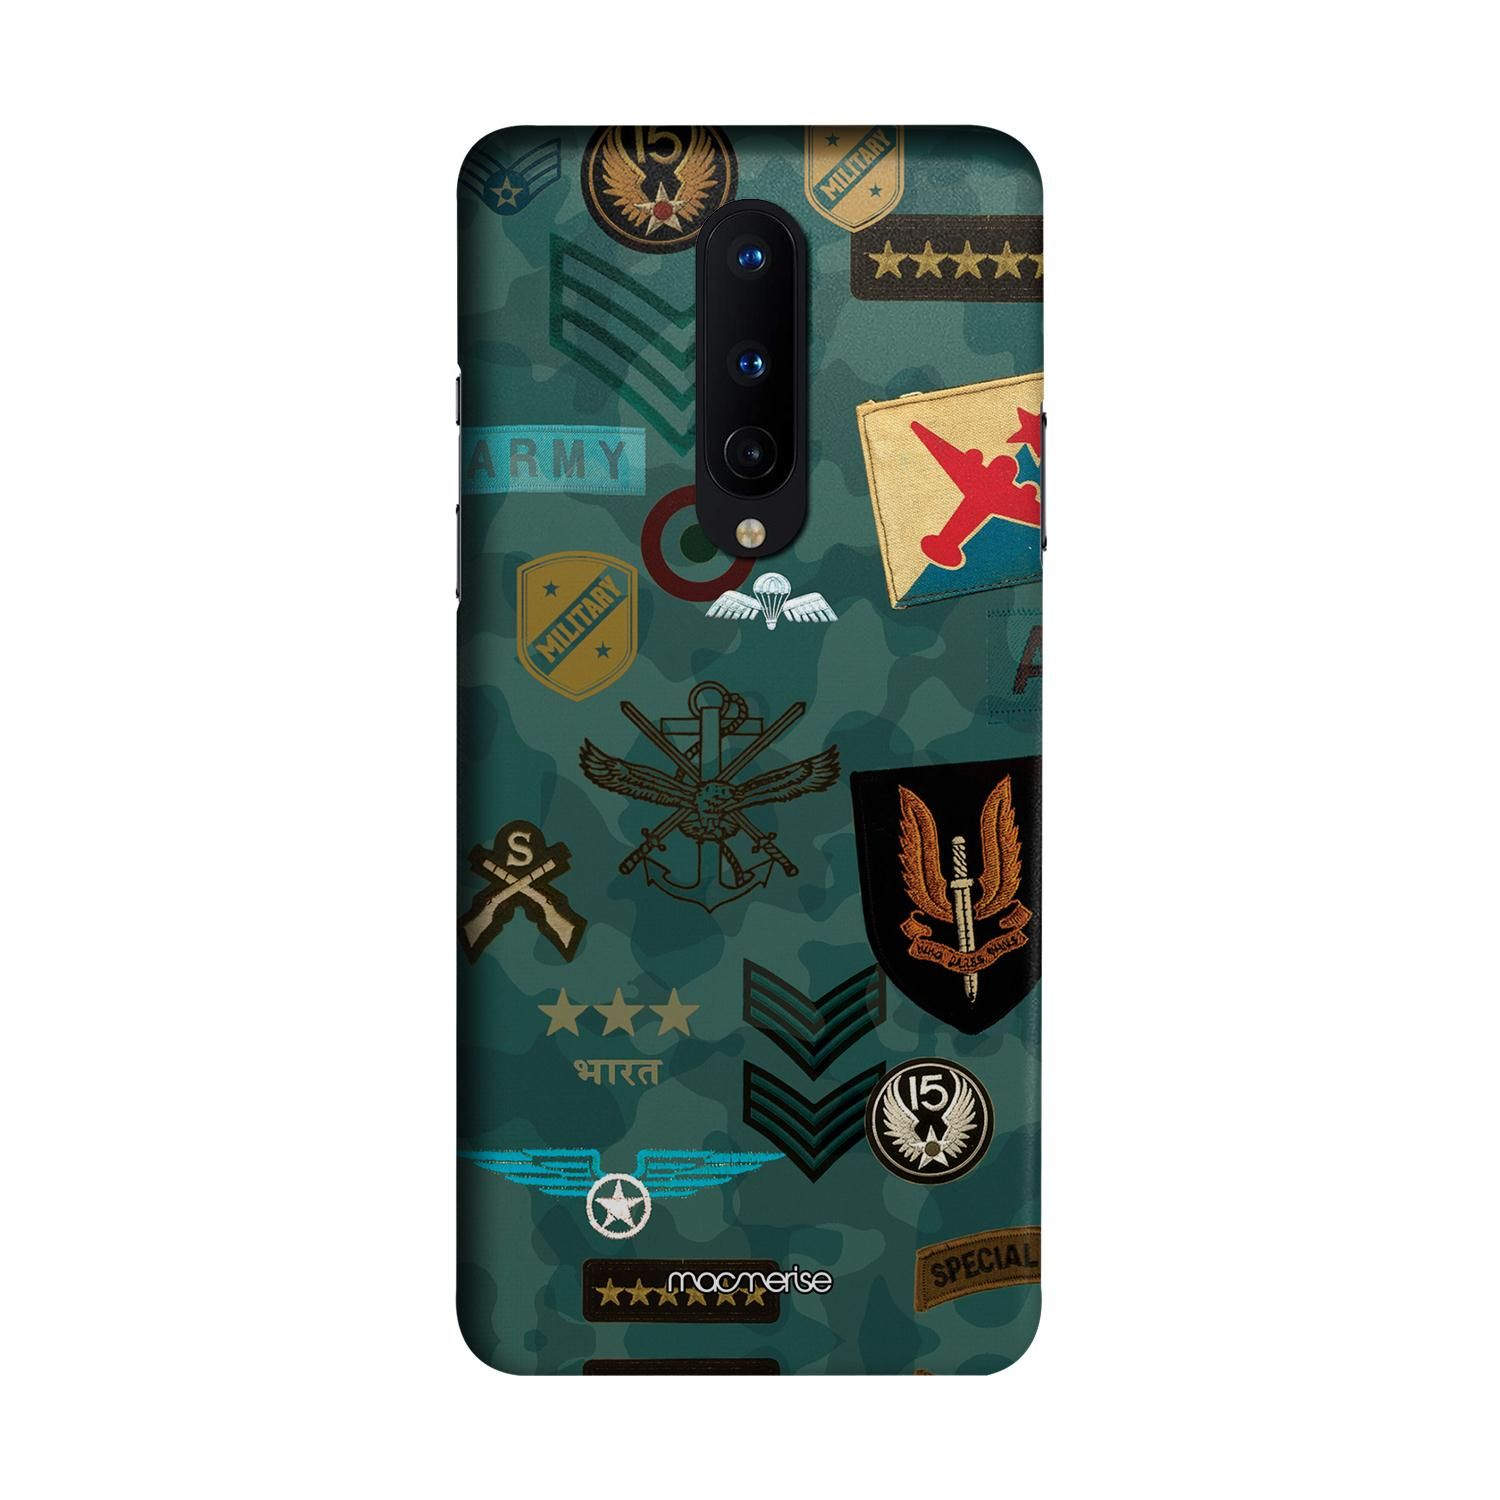 Roger That Blue - Sleek Phone Case for OnePlus 8